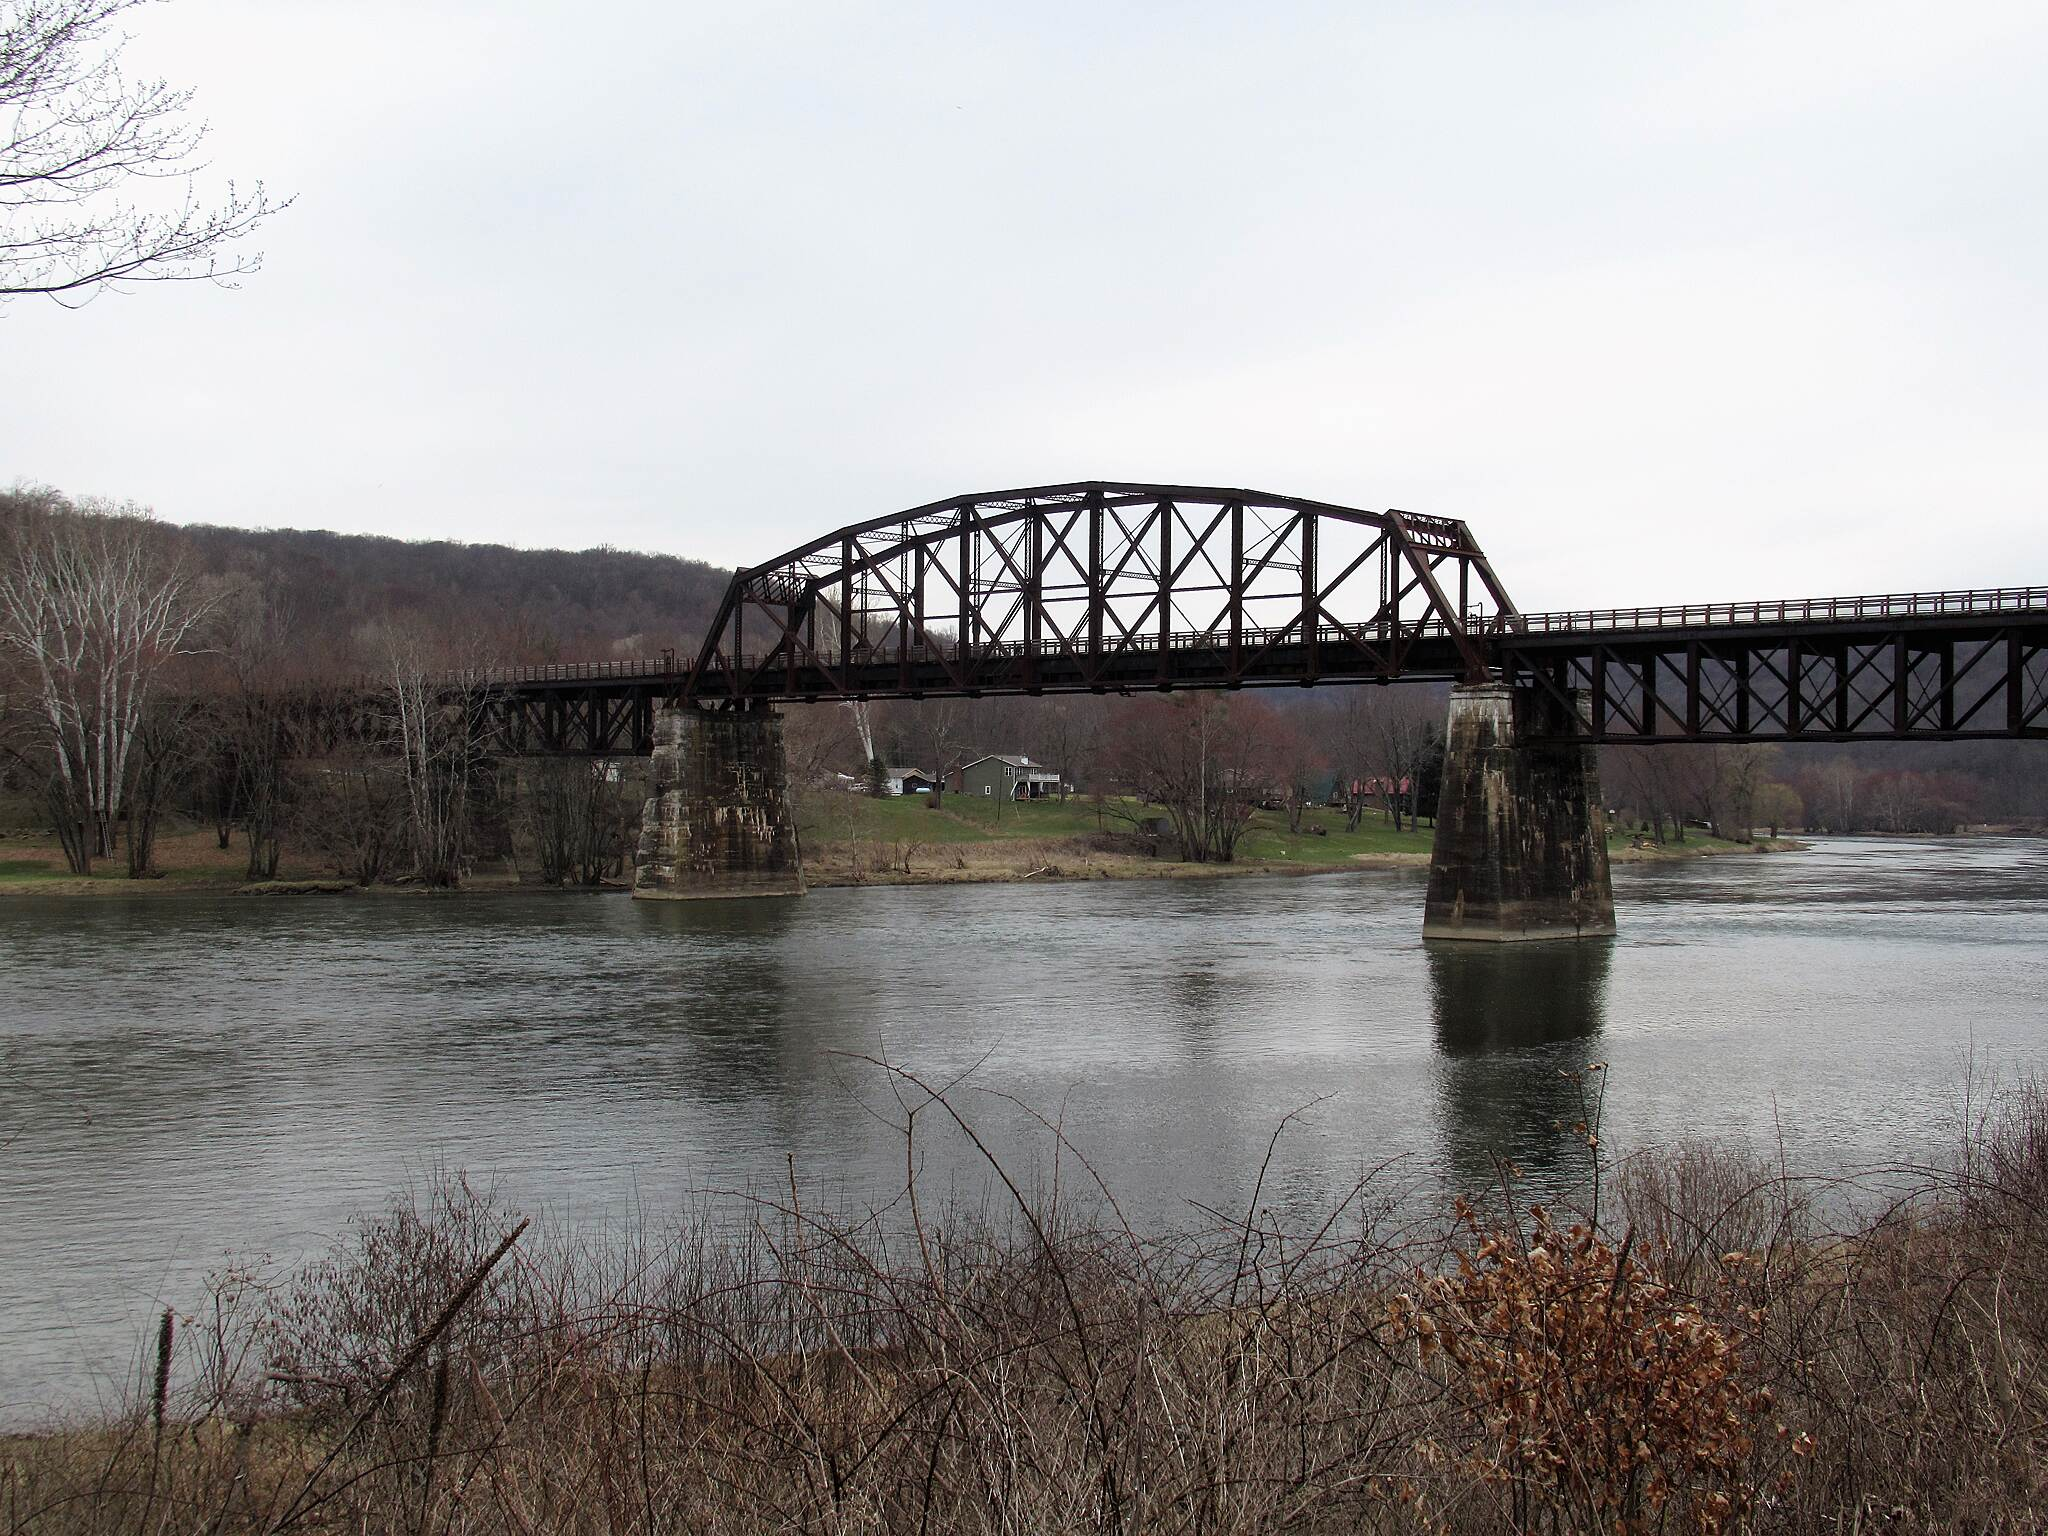 Allegheny River Trail View of the Belmar Bridge  View of the historic Belmar Bridge.  This bridge is part of the Sandy Creek Trail .